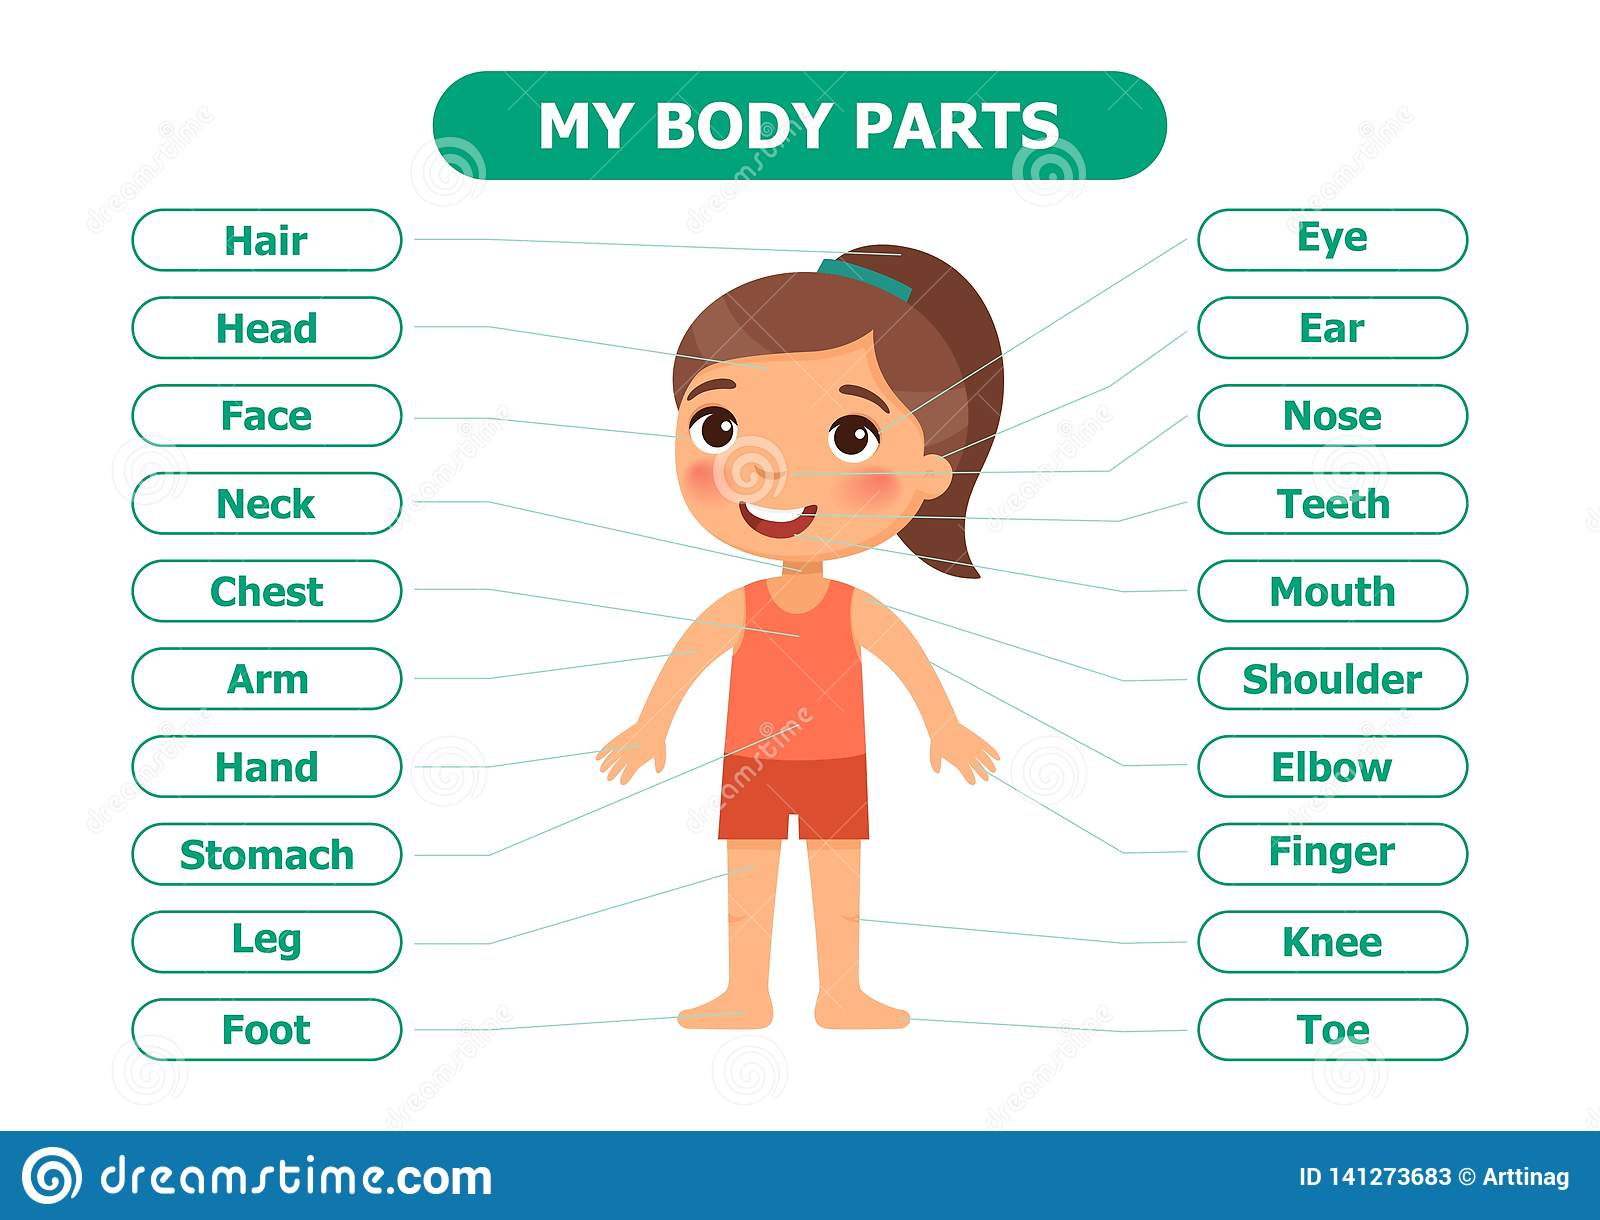 My Body Parts - Anatomy For Children  Stock Vector - Illustration of